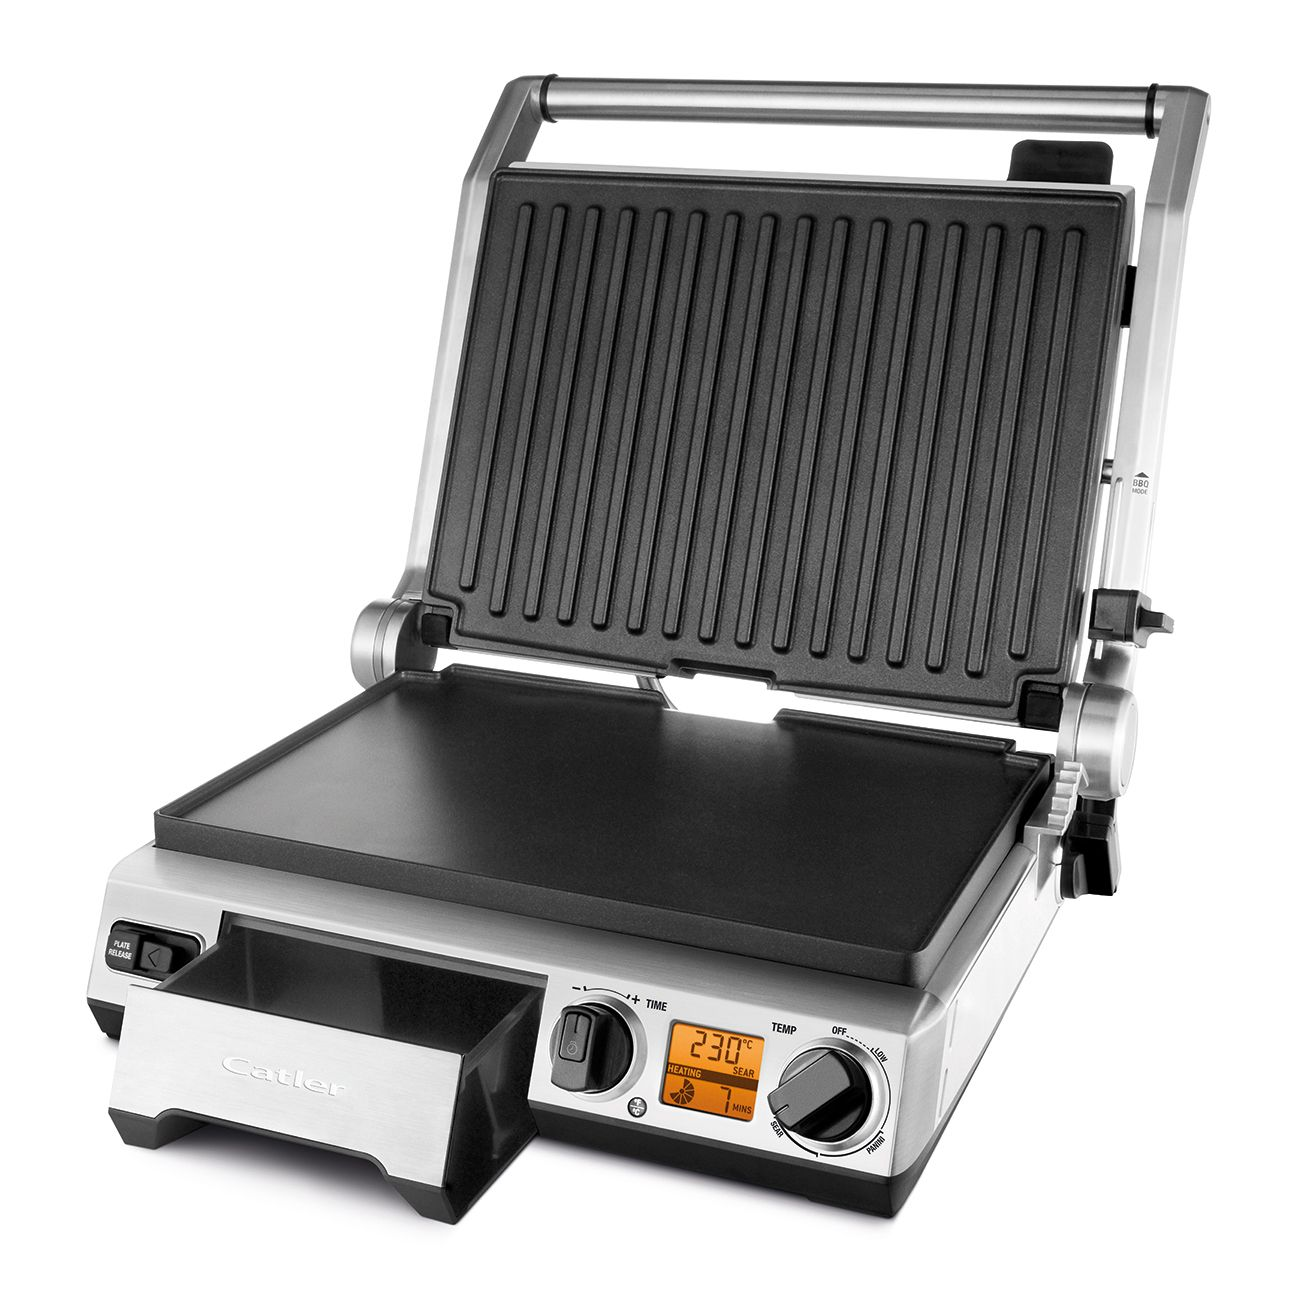 Contact and bbq grill 2 in 1 indoor bbq grilling bbq grill